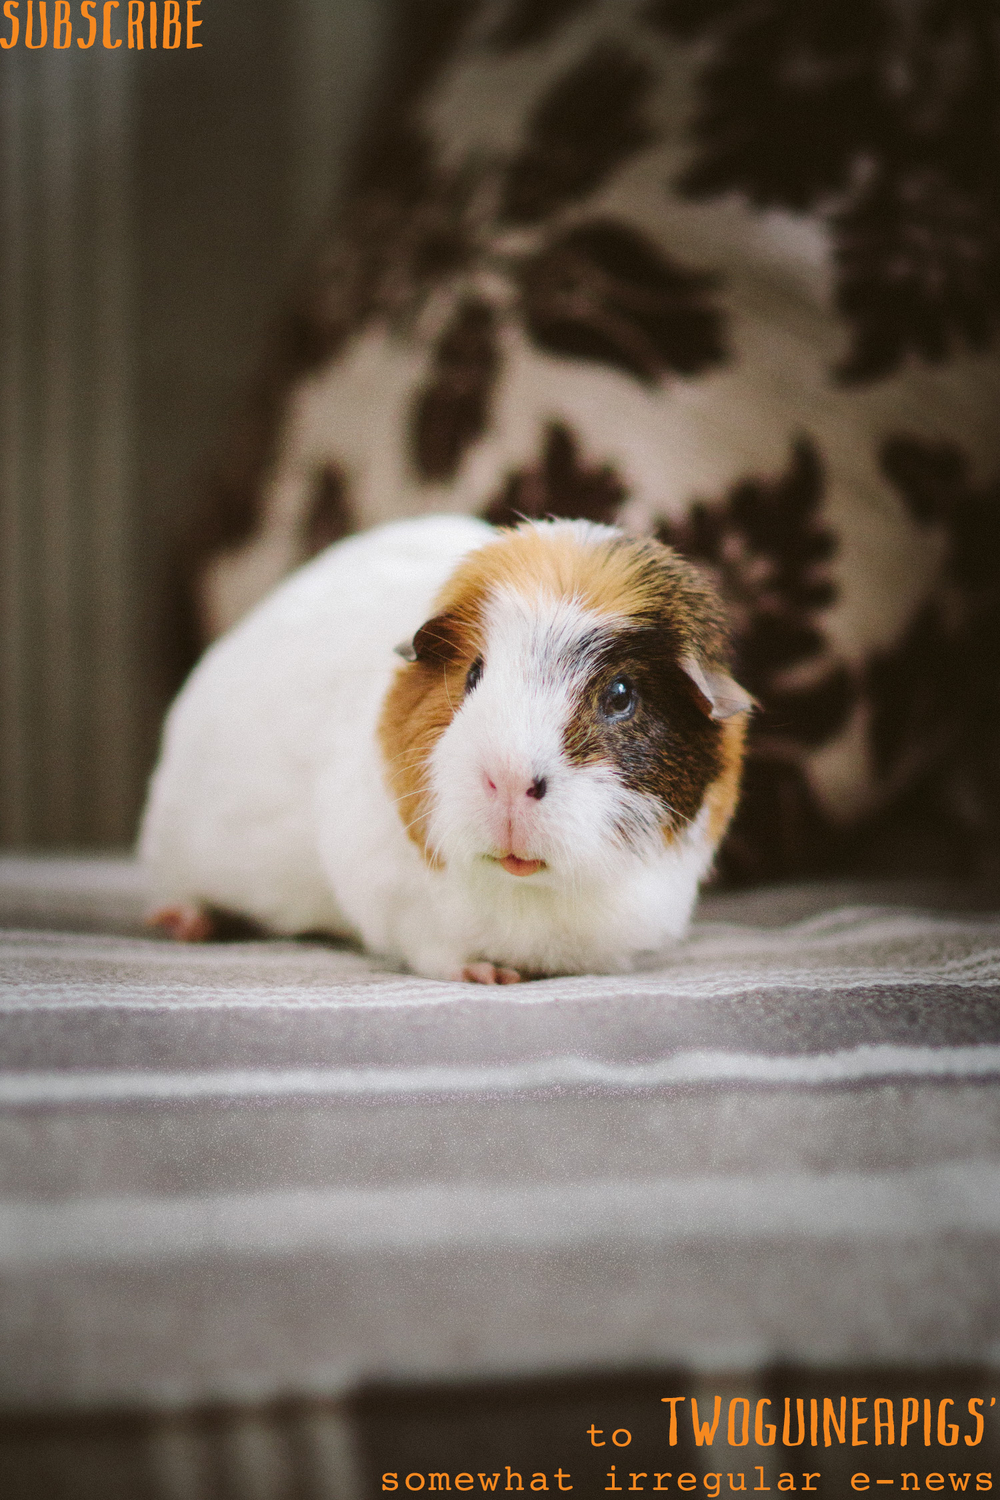 twoguineapigs_subscribe_newsletter_for_free